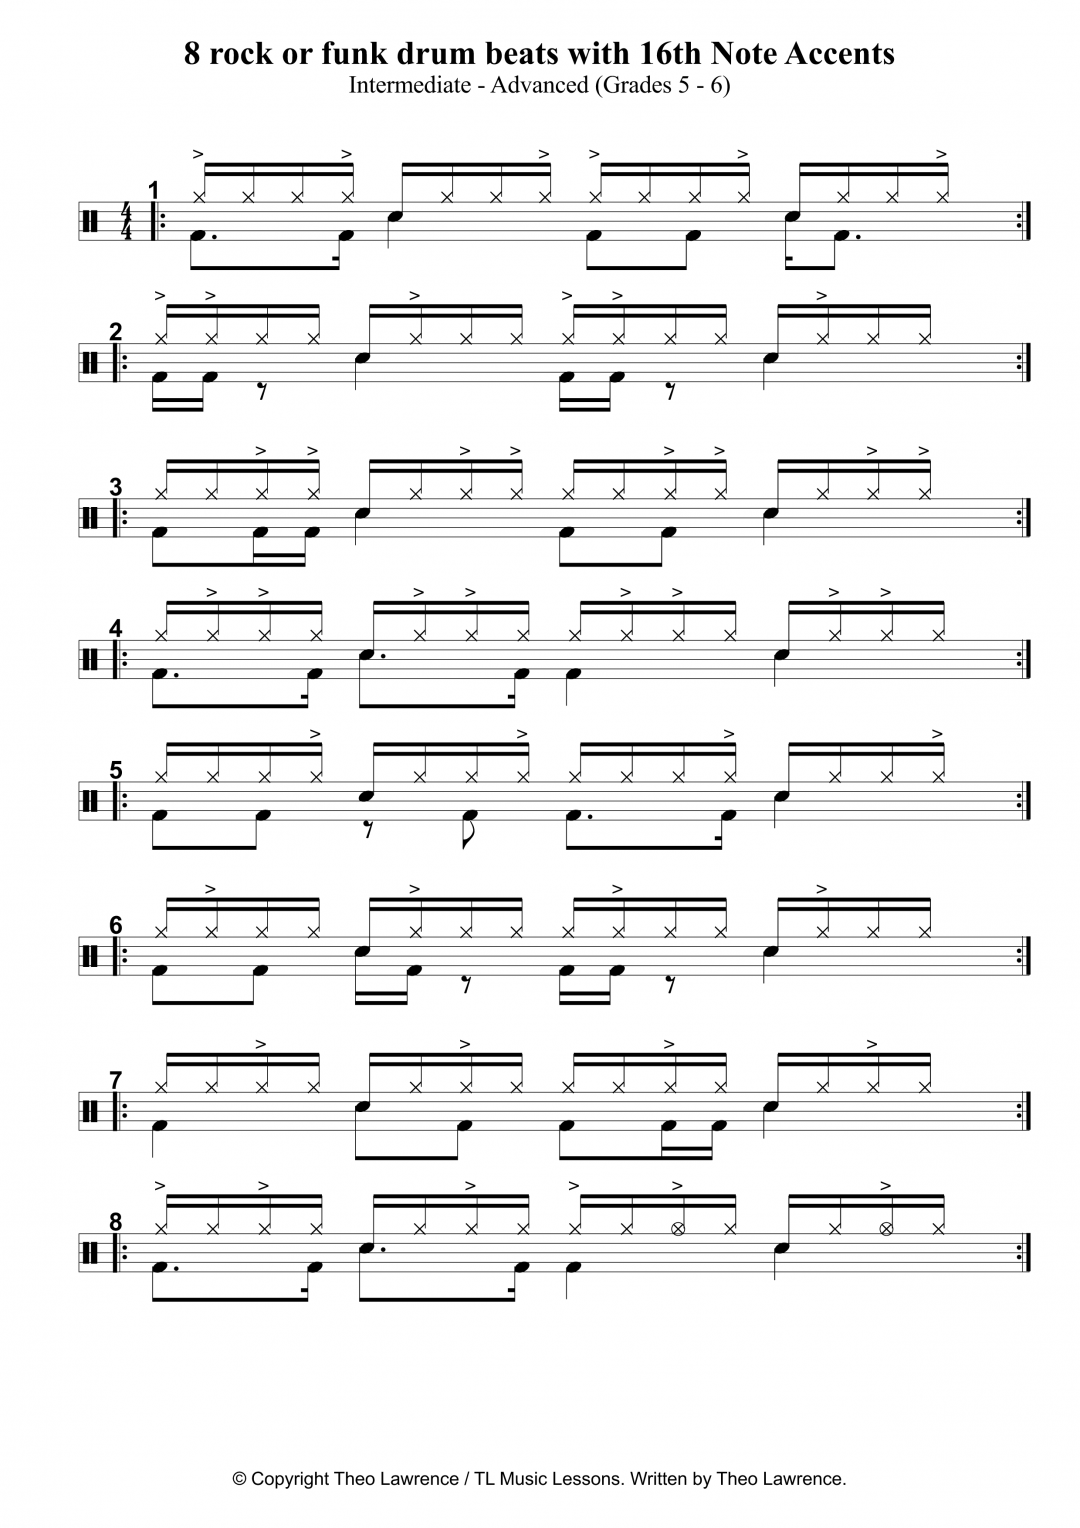 8 rock or funk drum beats with 16th Note Accents for grade 5 and up